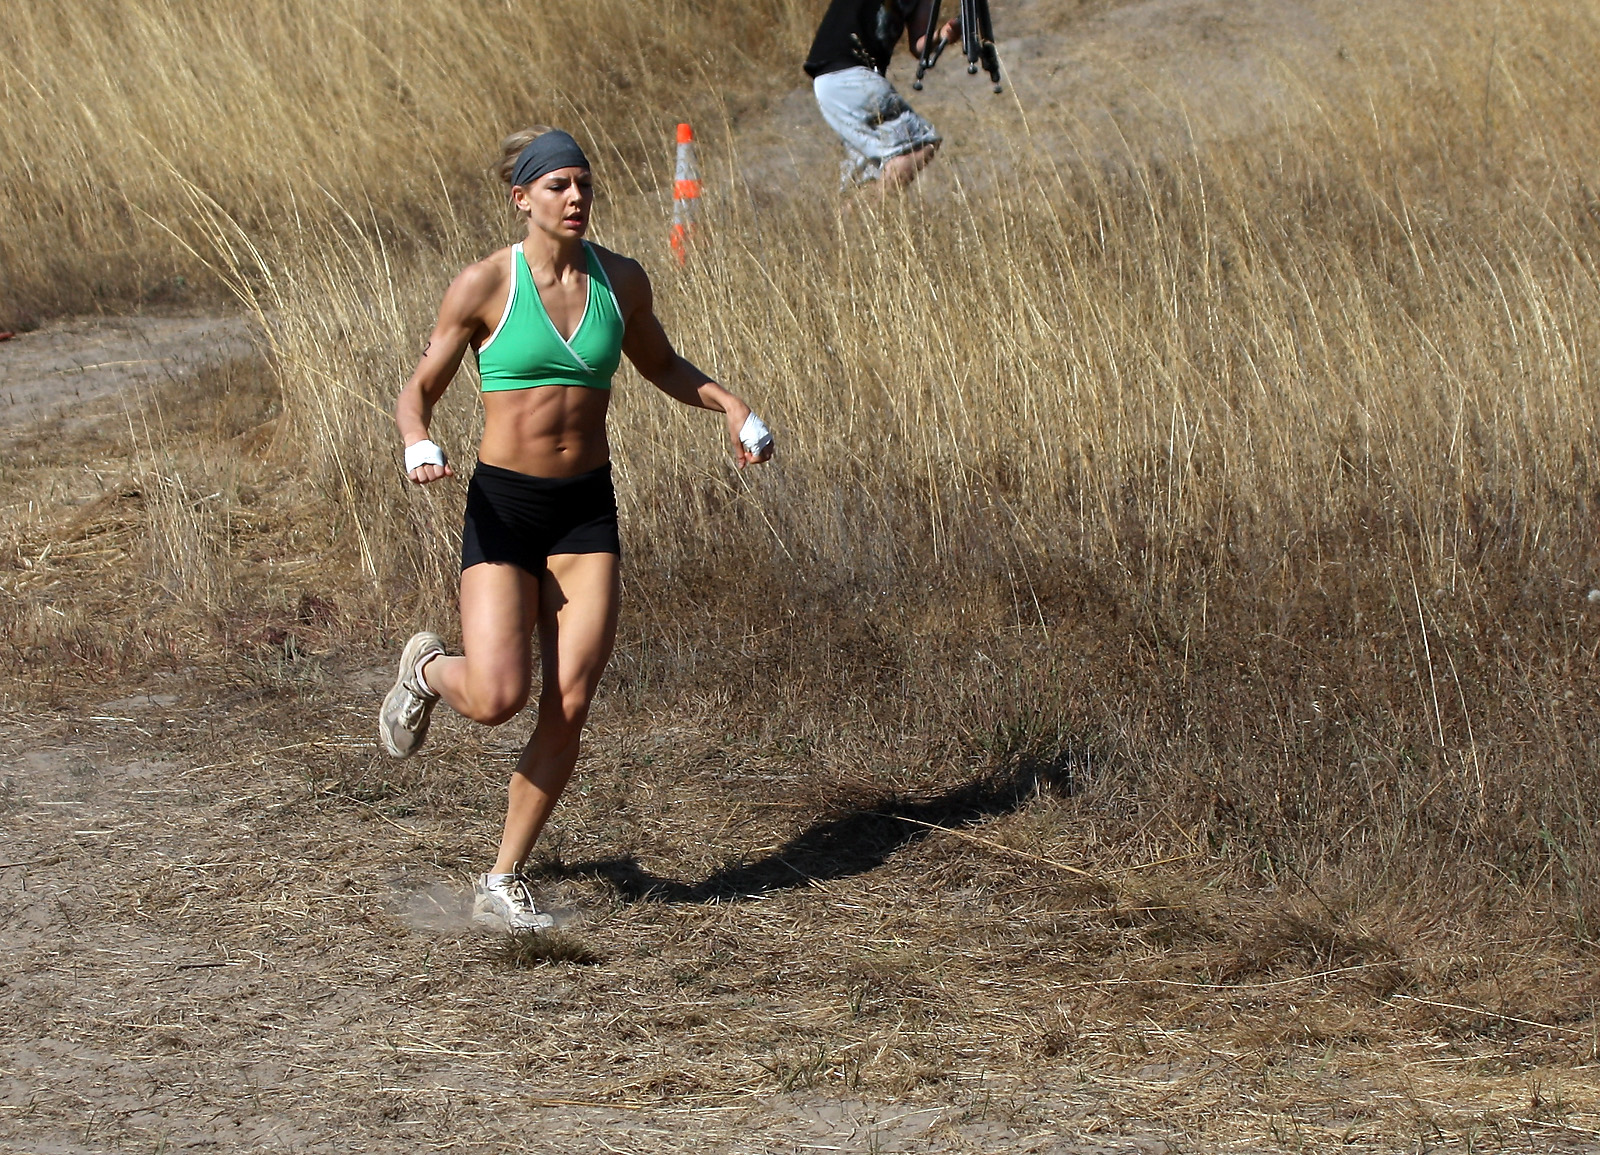 Hill Run at the 2008 Games